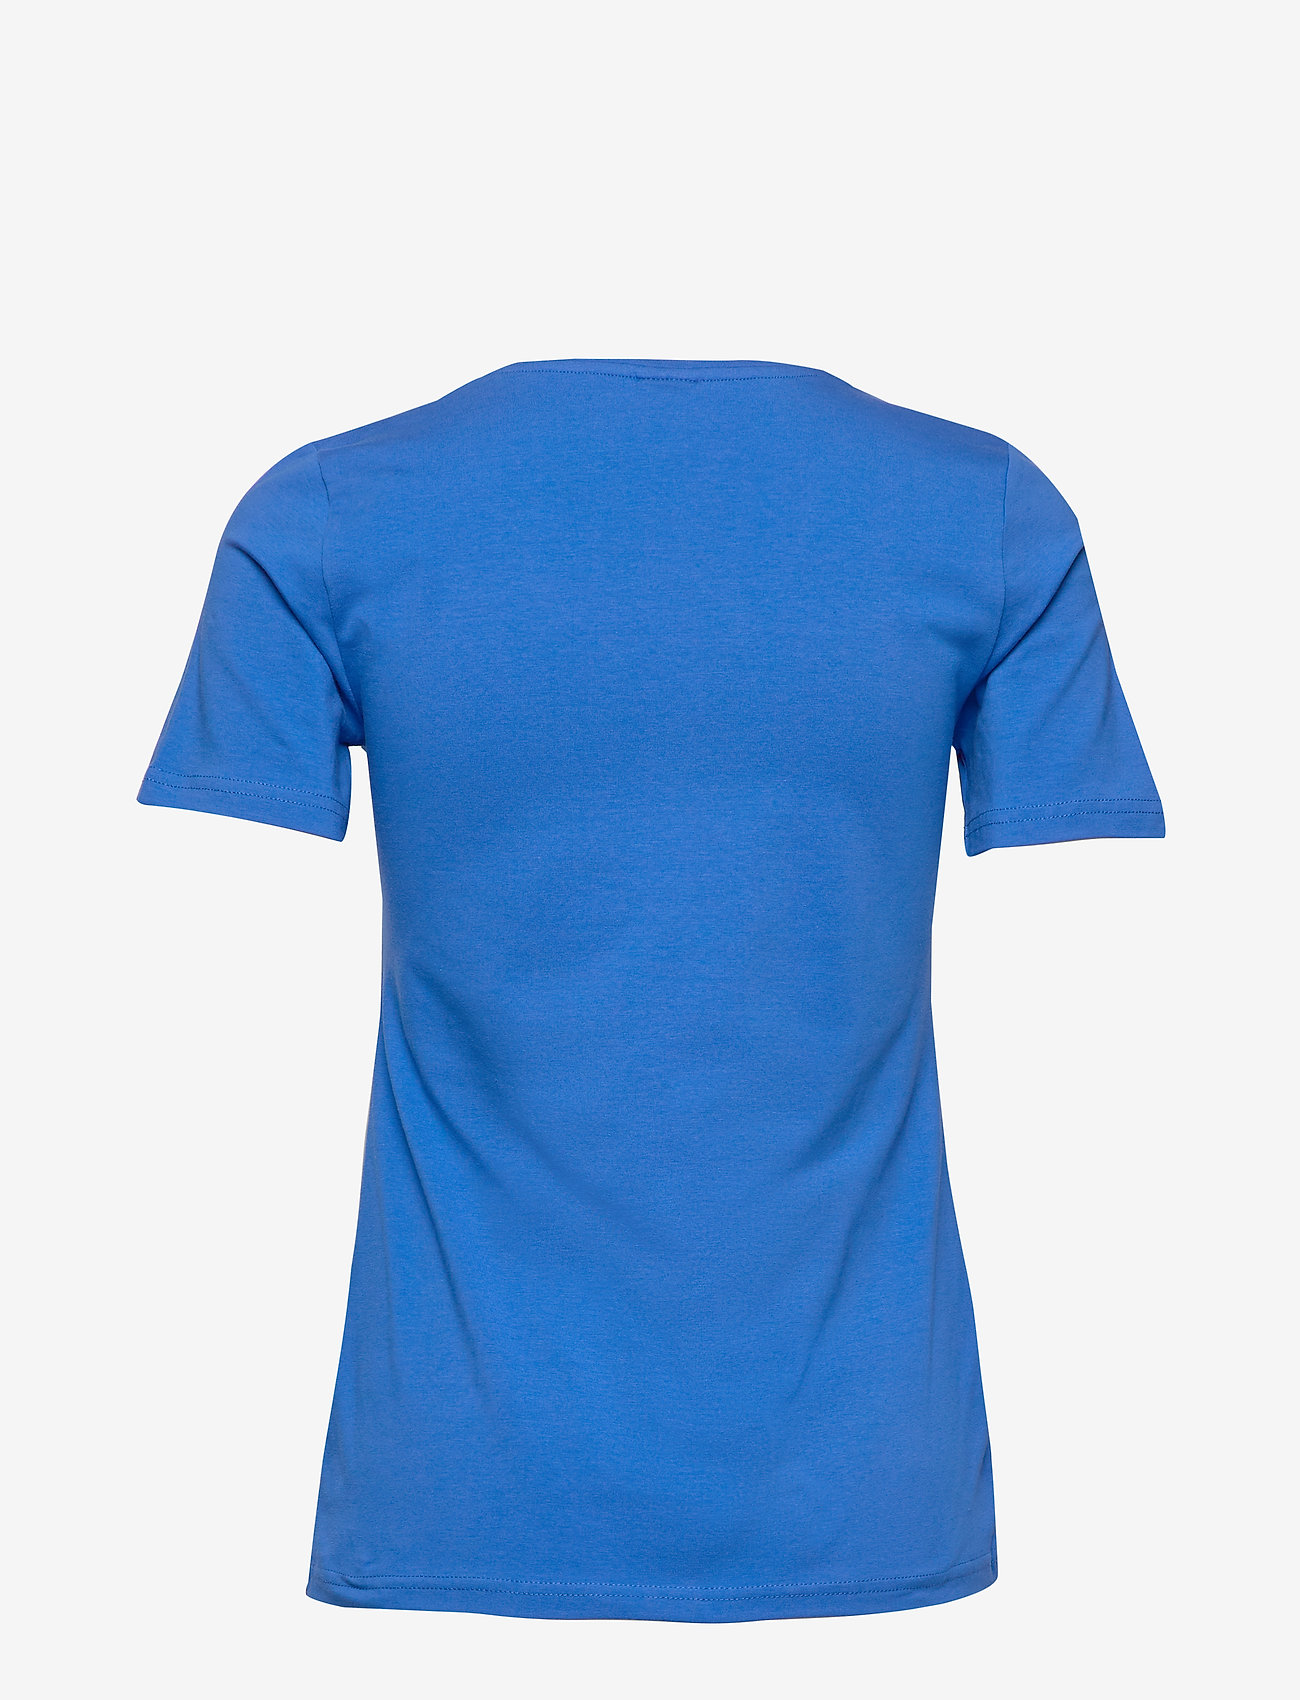 Nanso Ladies t-shirt, Basic - T-shirts & Tops BLUE